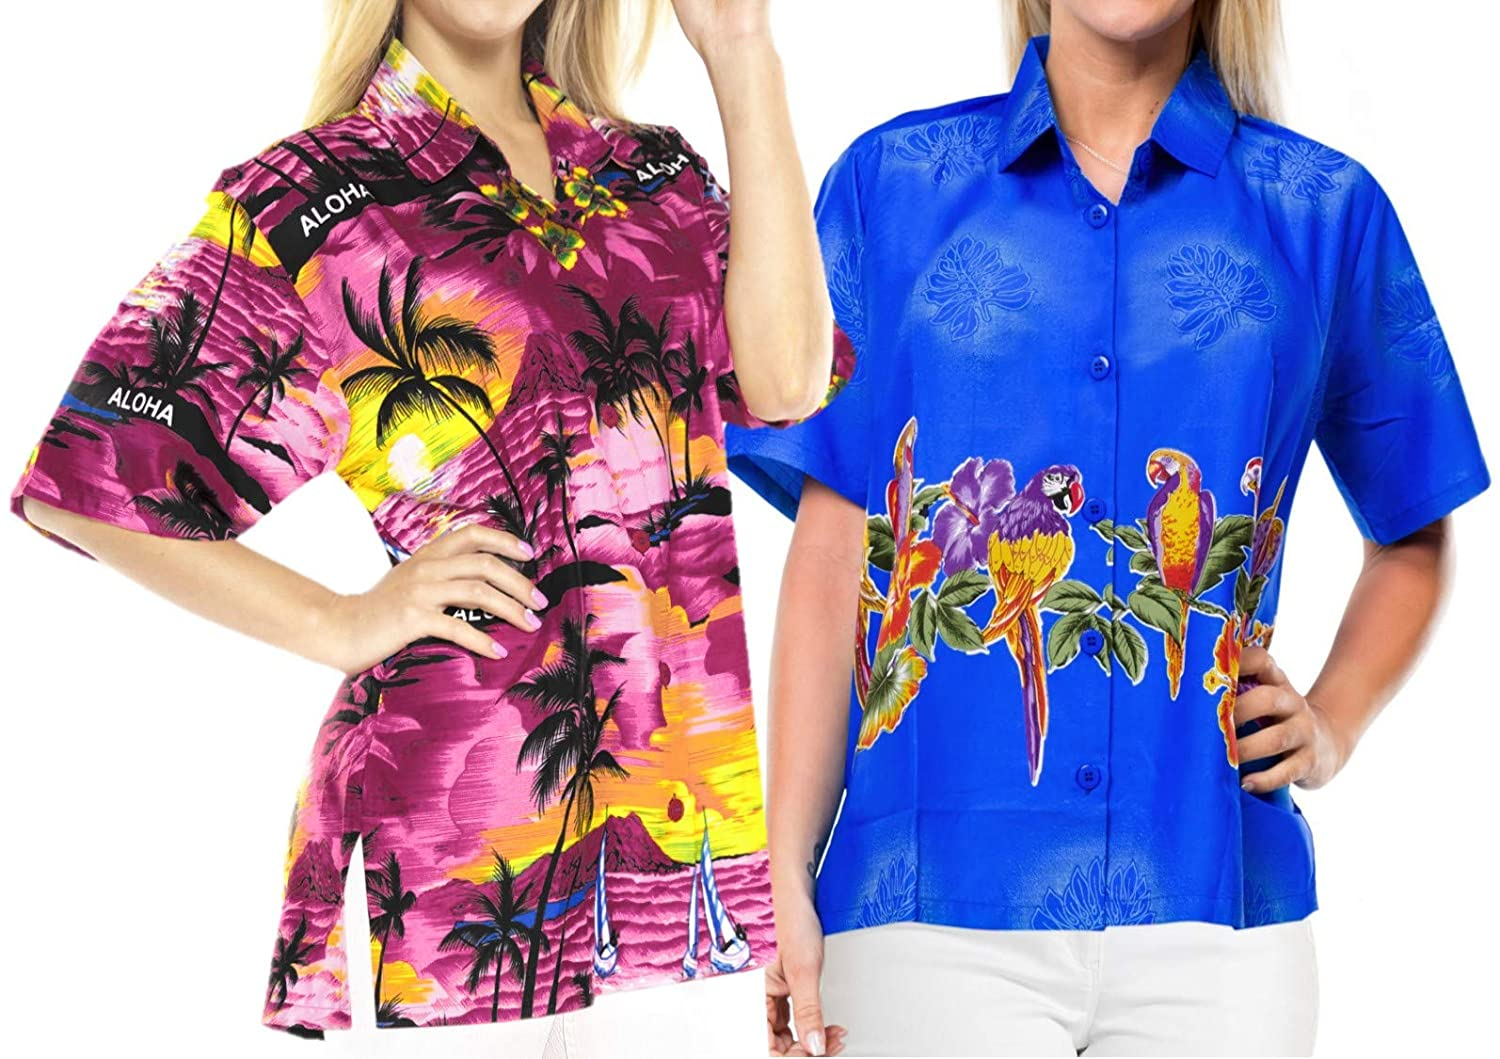 LA LEELA Women Hawaiian Boyfriends Shirt Ladies Beach Blouses Tops XXL Work from Home Clothes Women Blouse Pack of 2